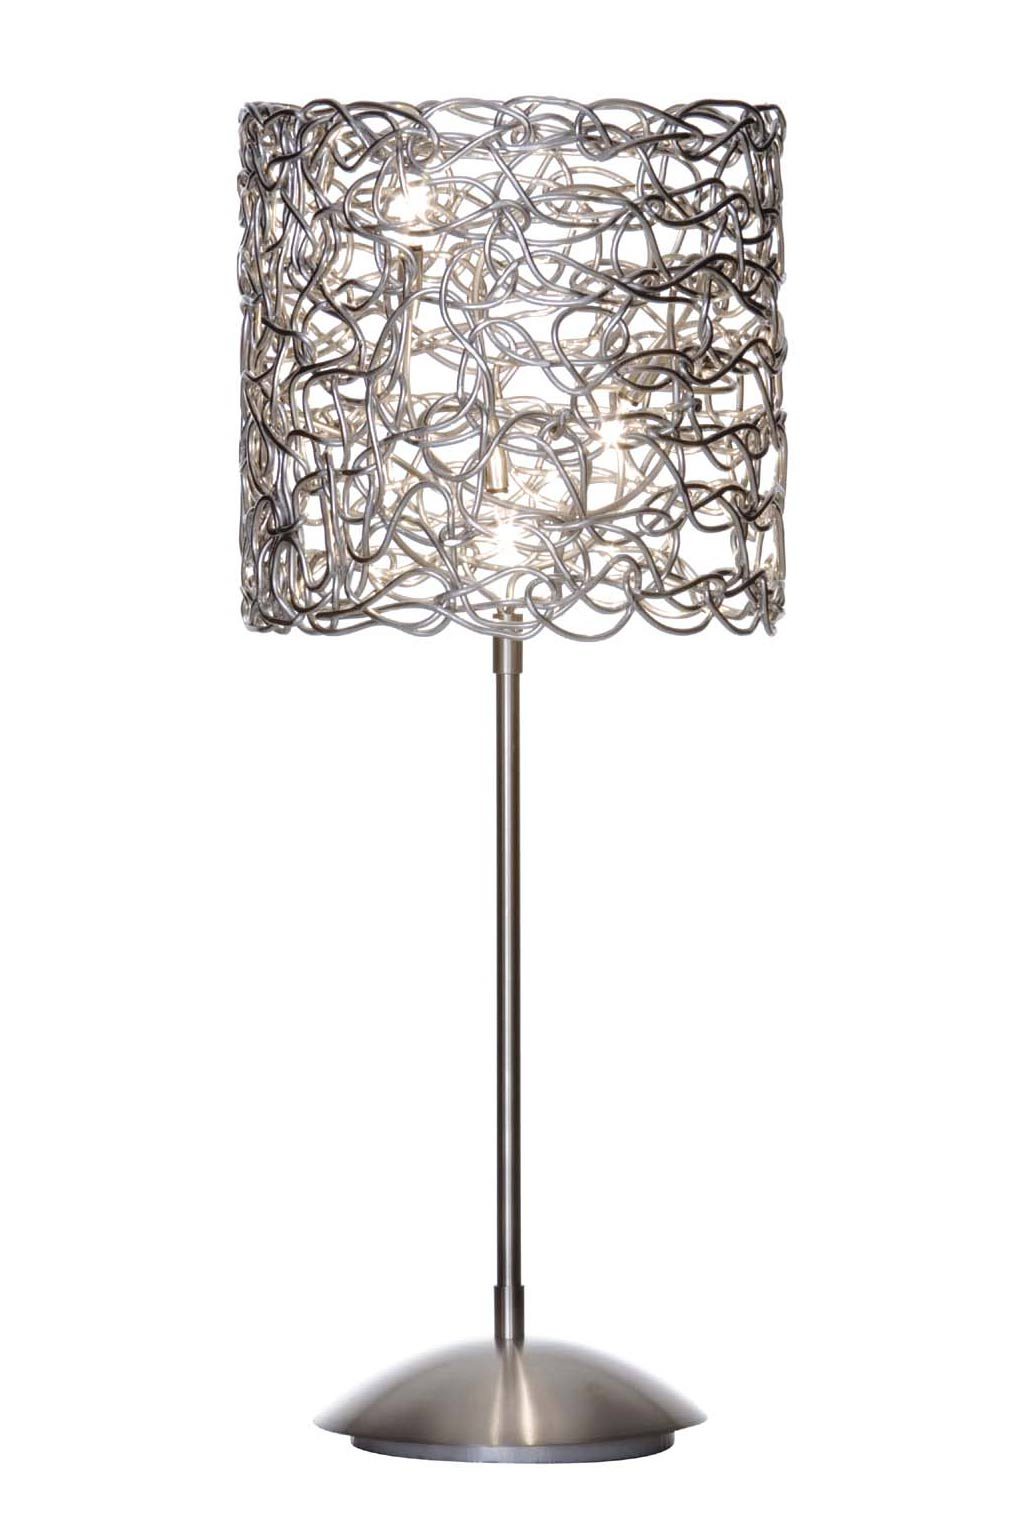 Aluminium wire table lamp image collections wiring table and aluminium wire table lamp keyboard keysfo